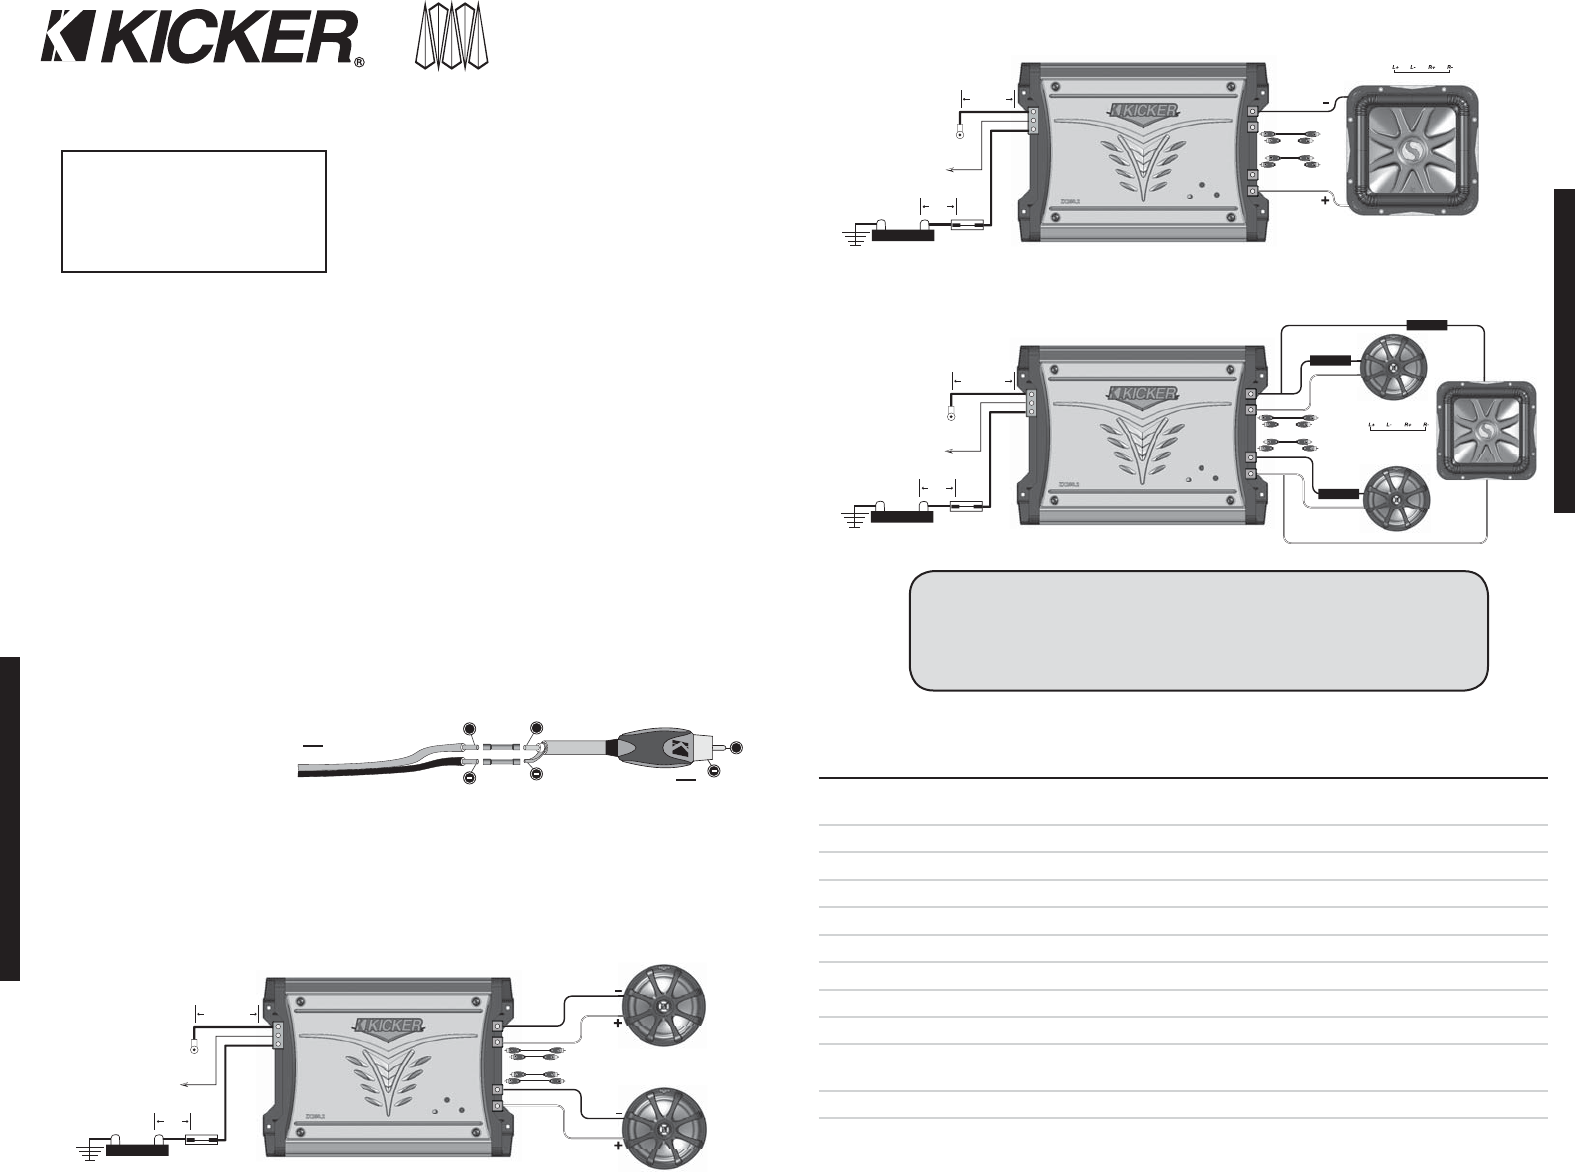 kicker zx350 4 wiring diagram   29 wiring diagram images